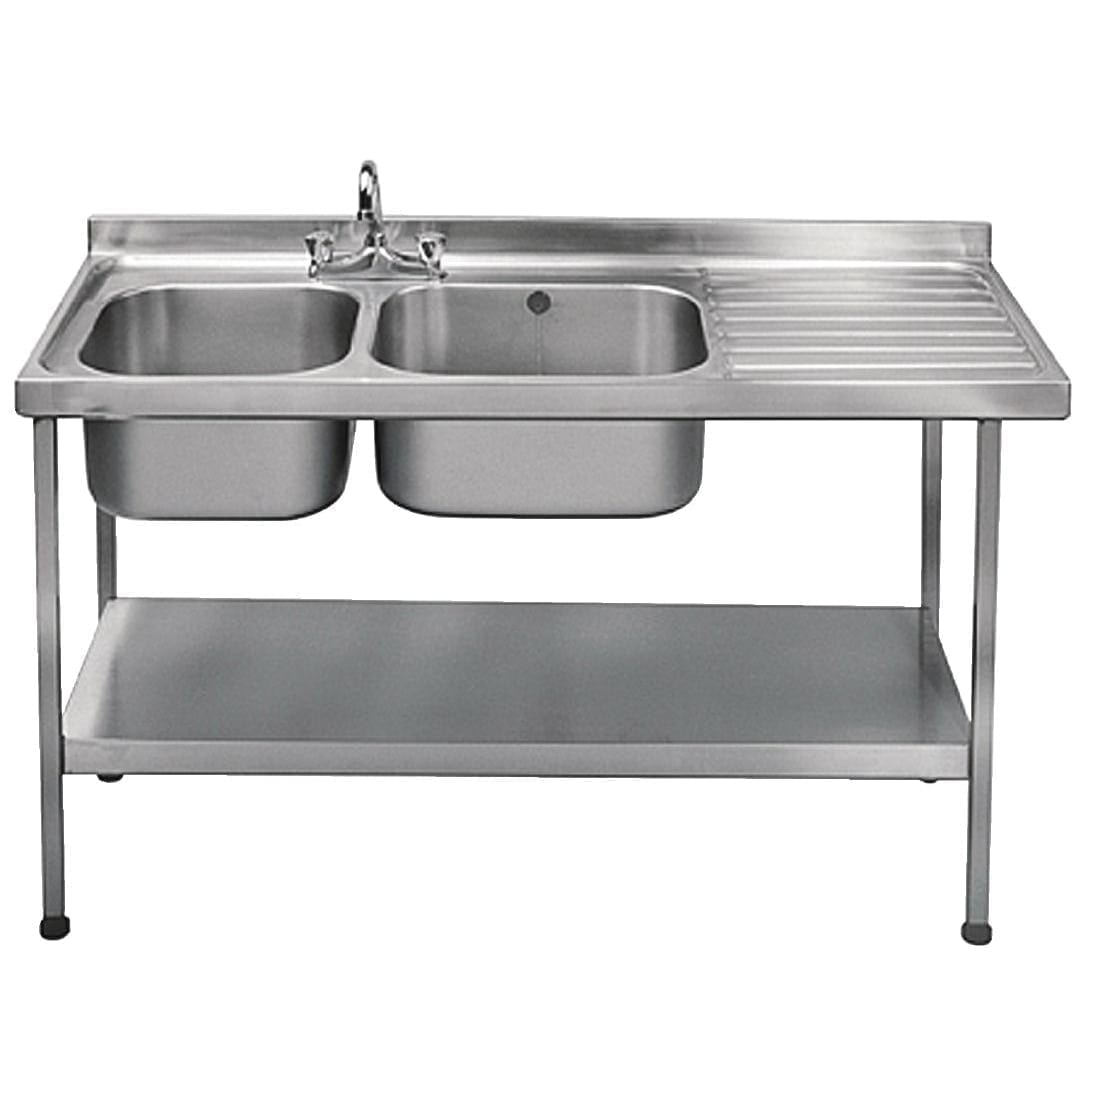 Sissons S/S Sink 1500x600mm Dble L/H Bwl inc taps R/H Drainer Mini Range(Direct)-0